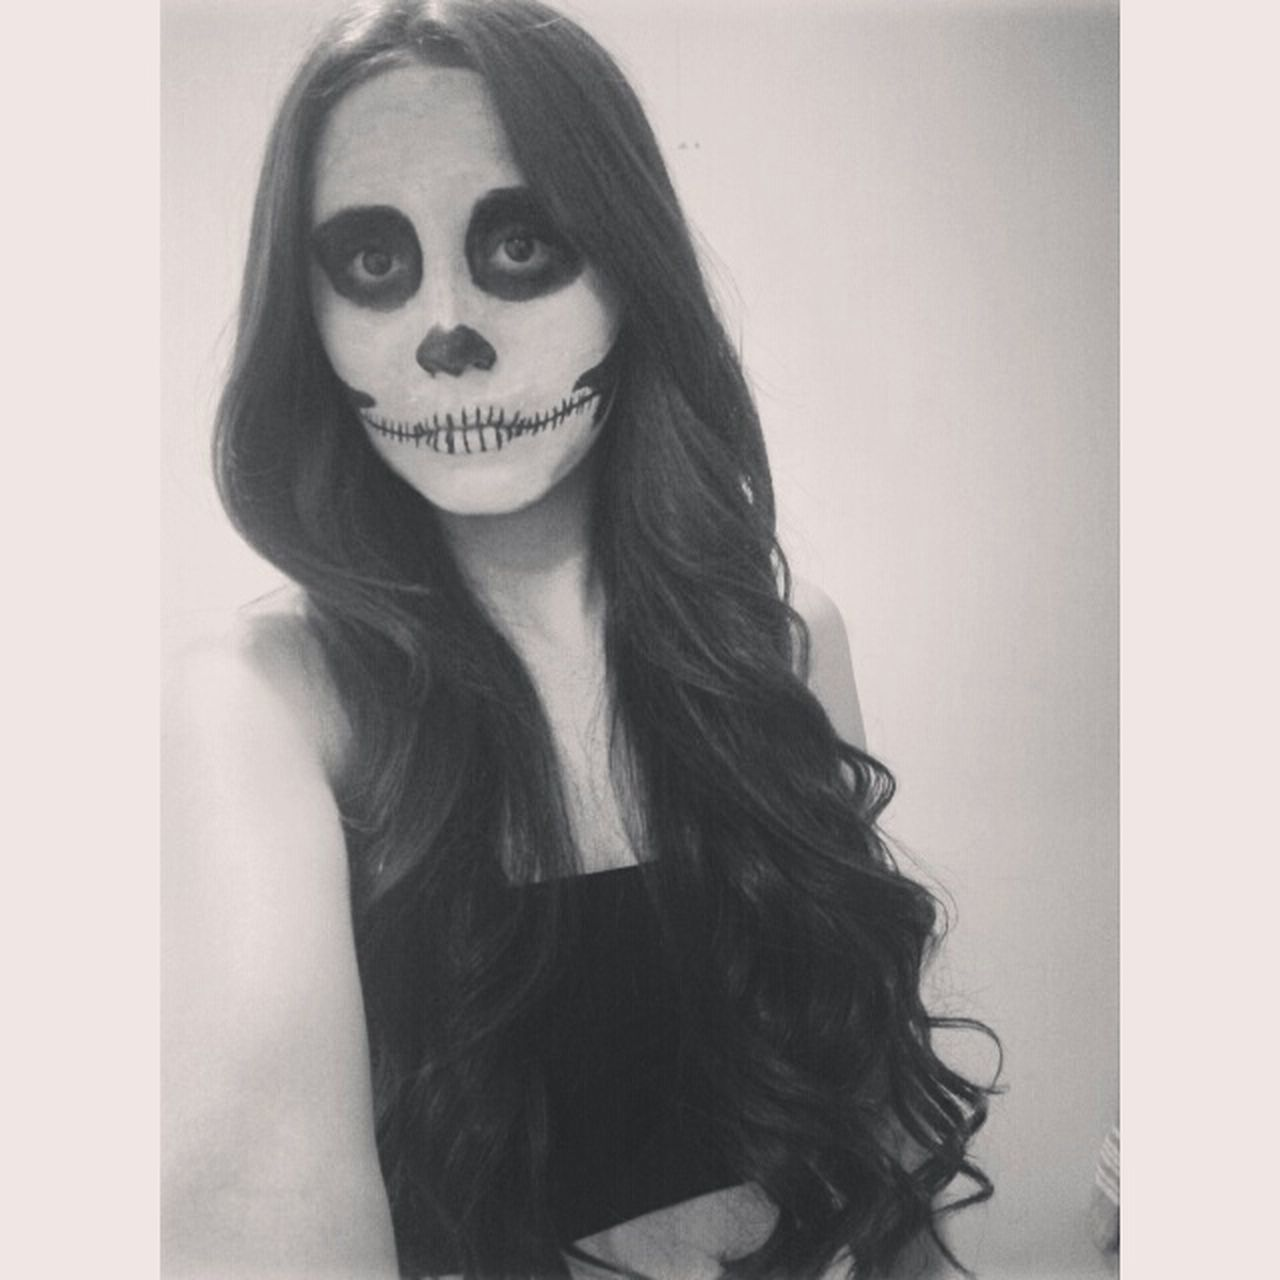 Skull Makeup Skull Halloween Long Hair Black And White October Hipster Pale Costume Scary